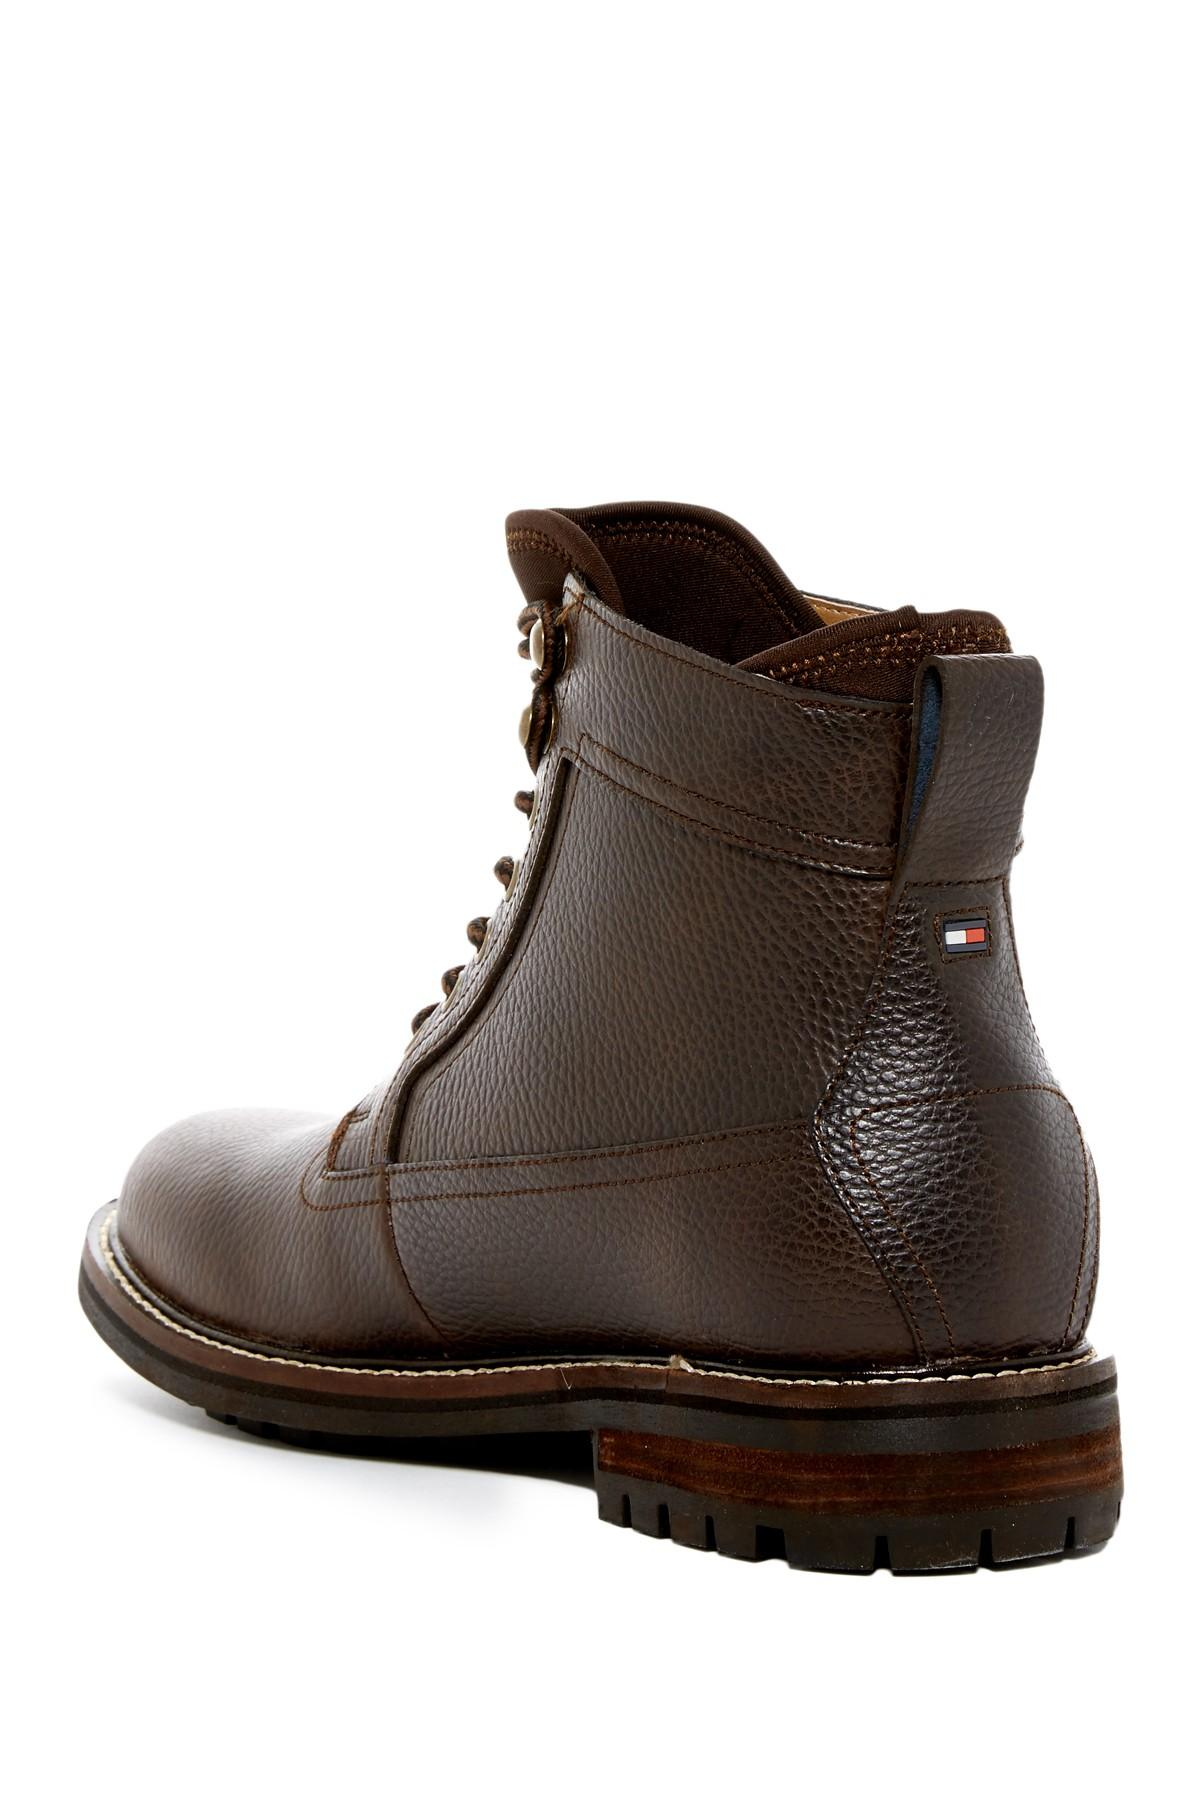 lyst tommy hilfiger hollins boot in brown for men. Black Bedroom Furniture Sets. Home Design Ideas